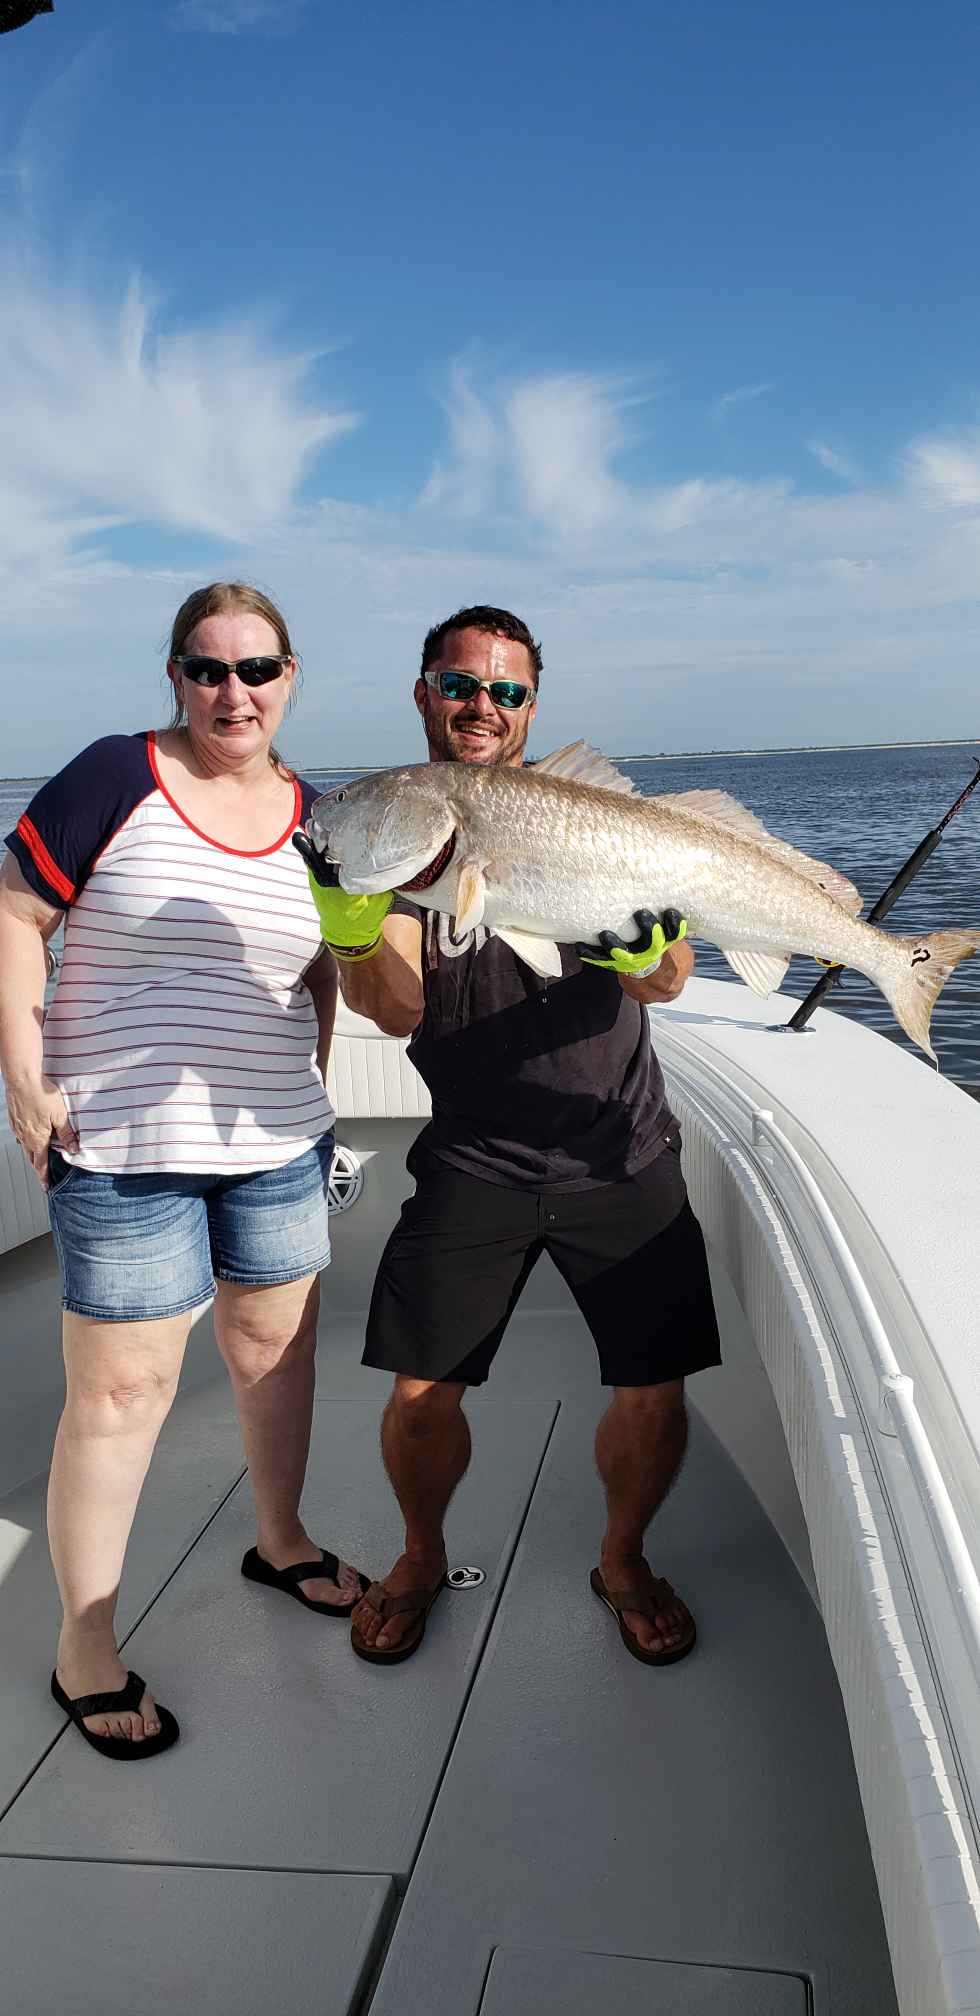 captain-redfish-charter-surfside-texas-2018